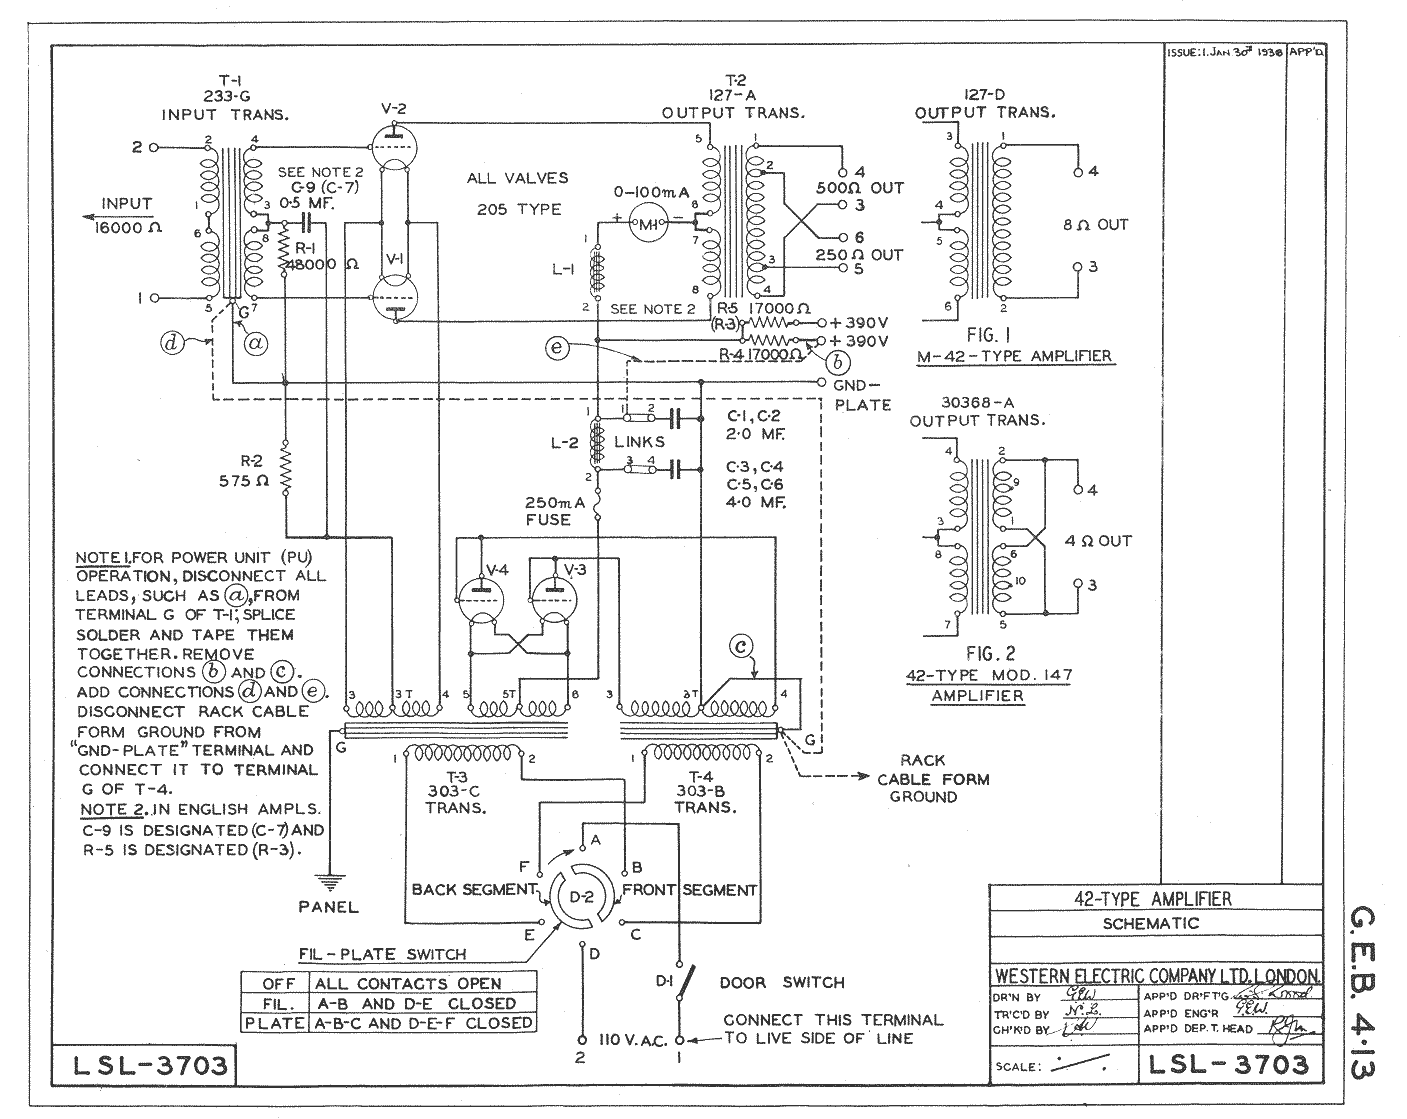 Western Electric 42 Amplifier , original schematic